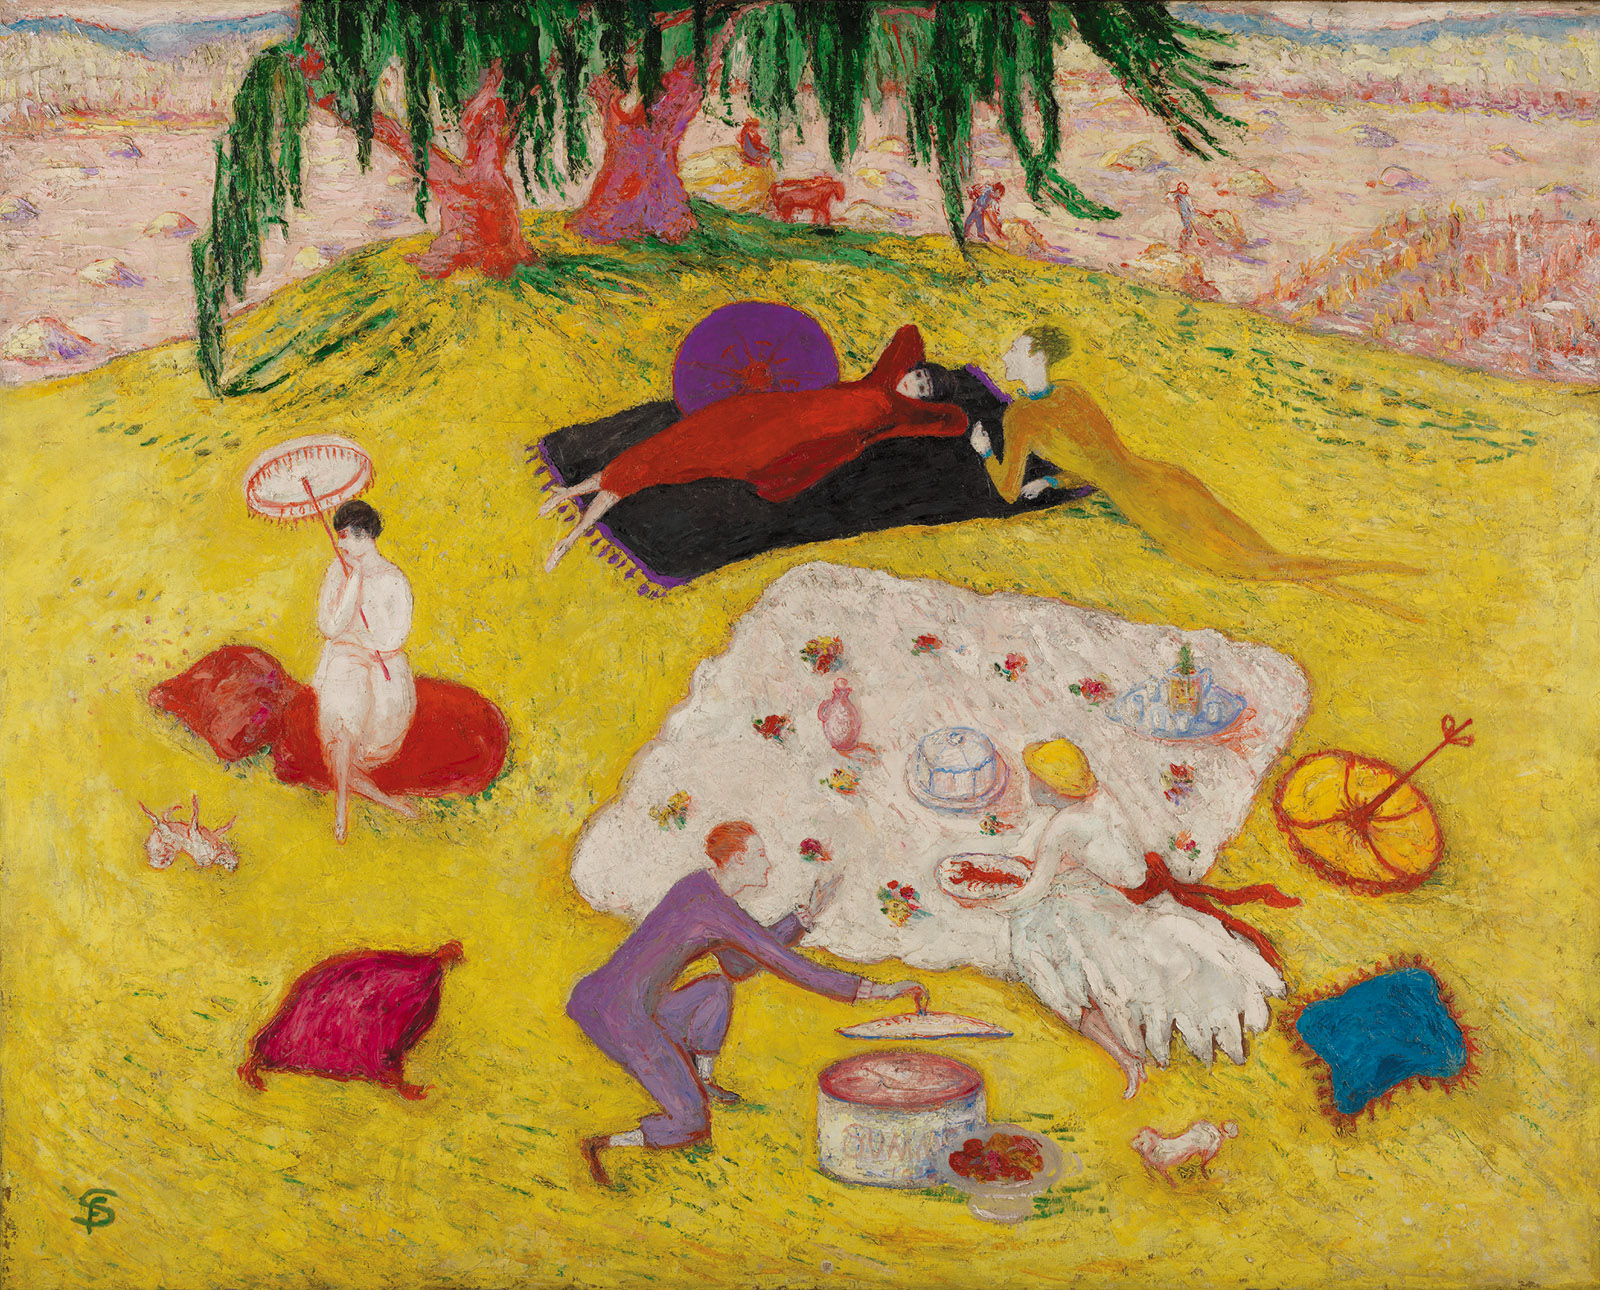 Florine Stettheimer: Picnic at Bedford Hills, 40 5/16 x 50 1/4 inches, 1918